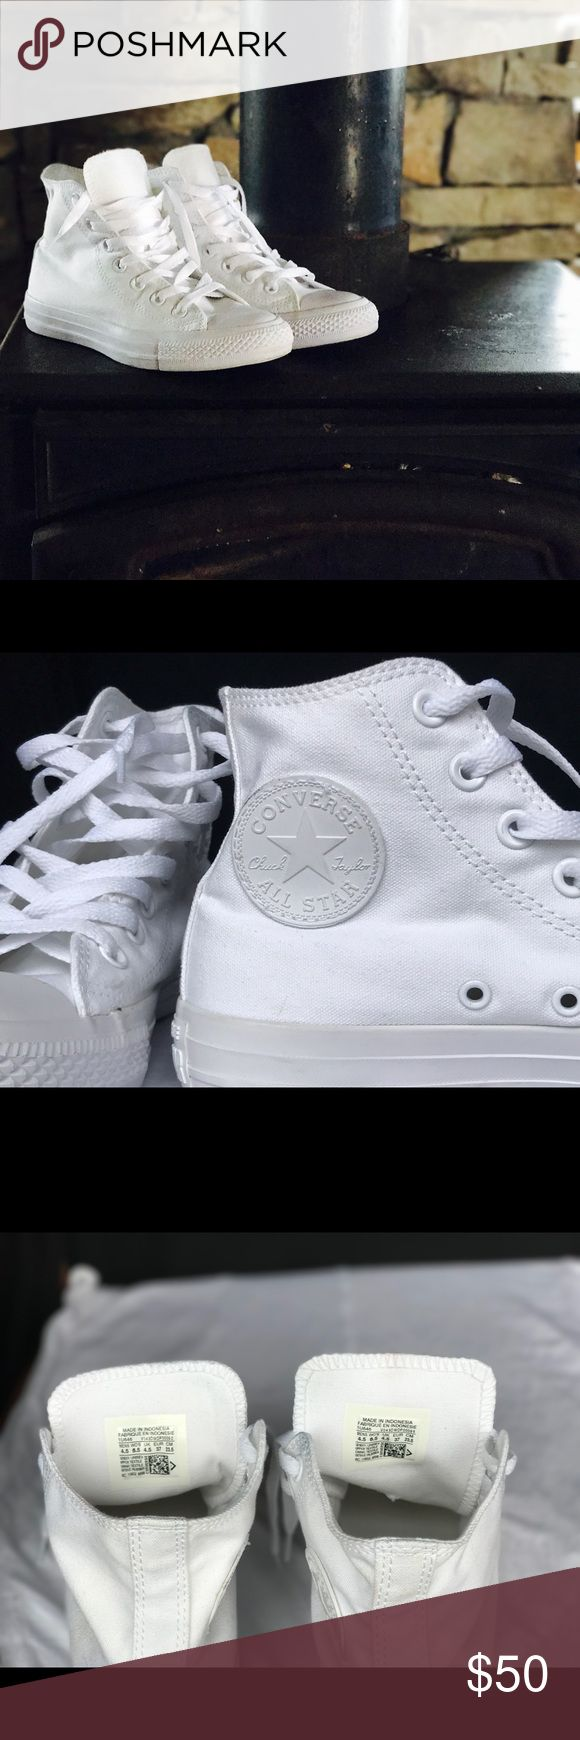 Unisex All white chuck Taylor converse All white chuck Taylor's.  Worn once, excellent condition unfortunately, too big for me. Open to reasonable offers. Converse Shoes Sneakers